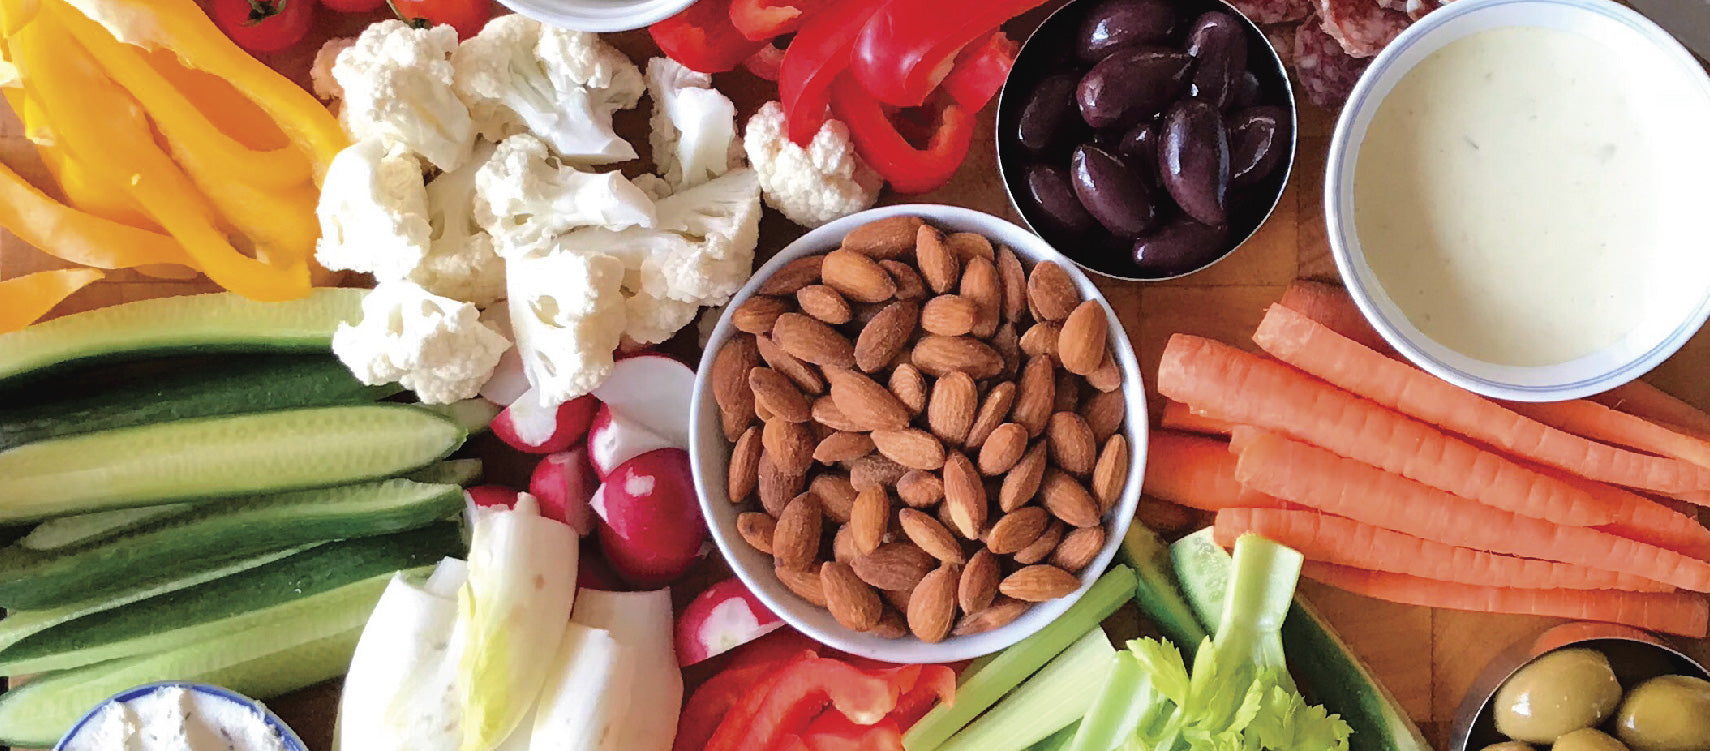 Different healthy snacks like nuts and carrots